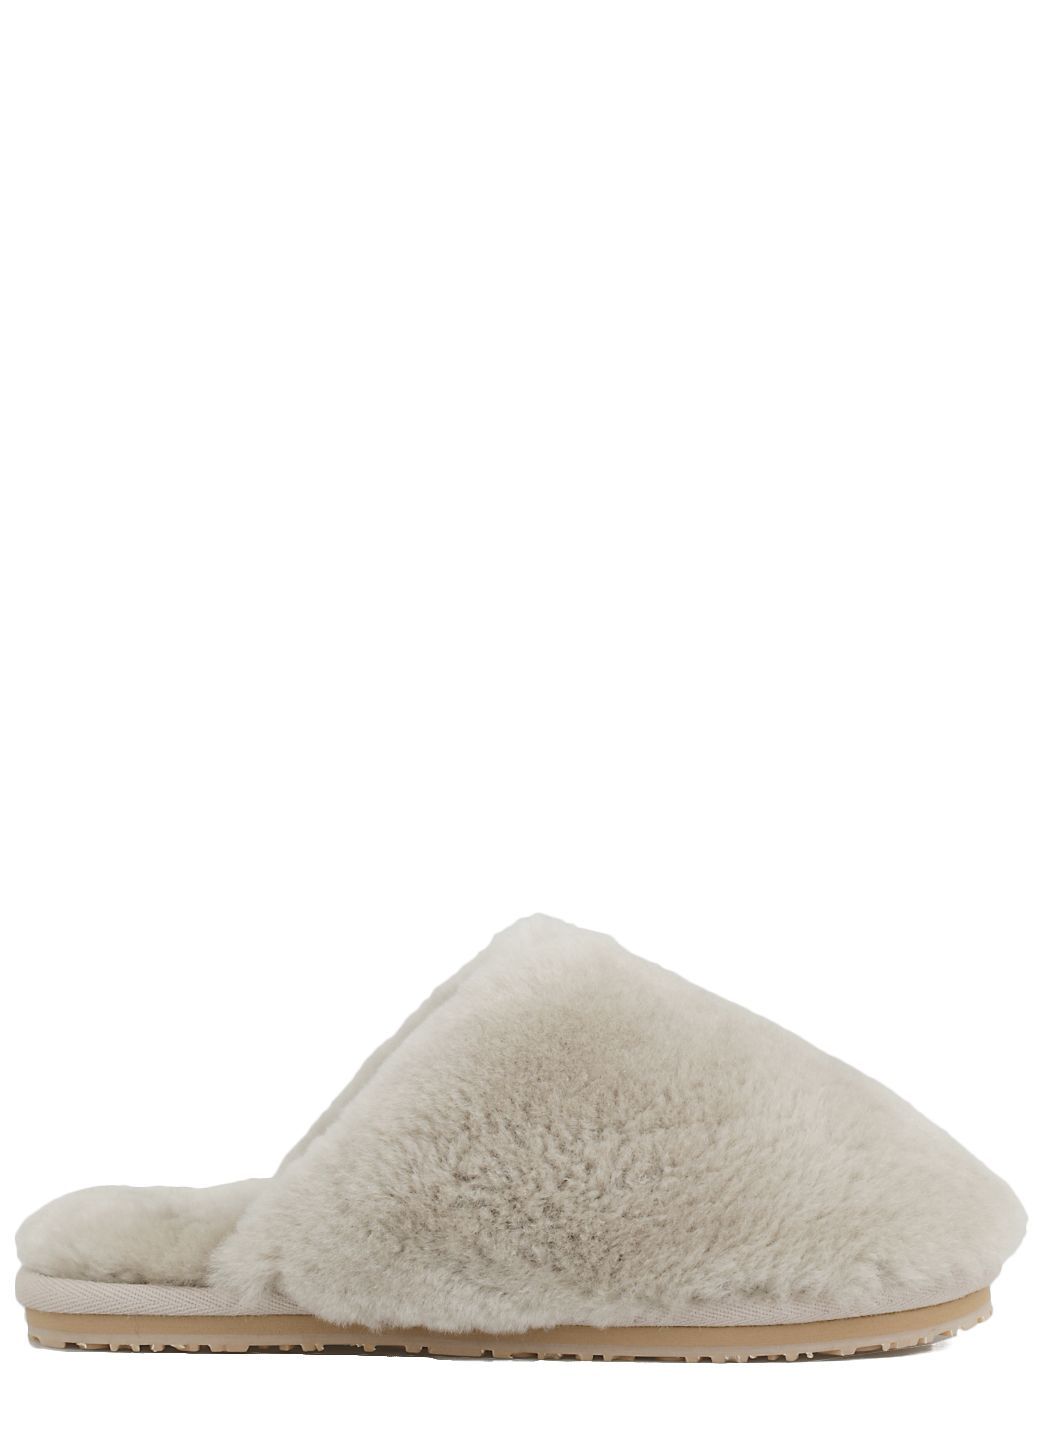 Closed toe sheepskin fur slipper